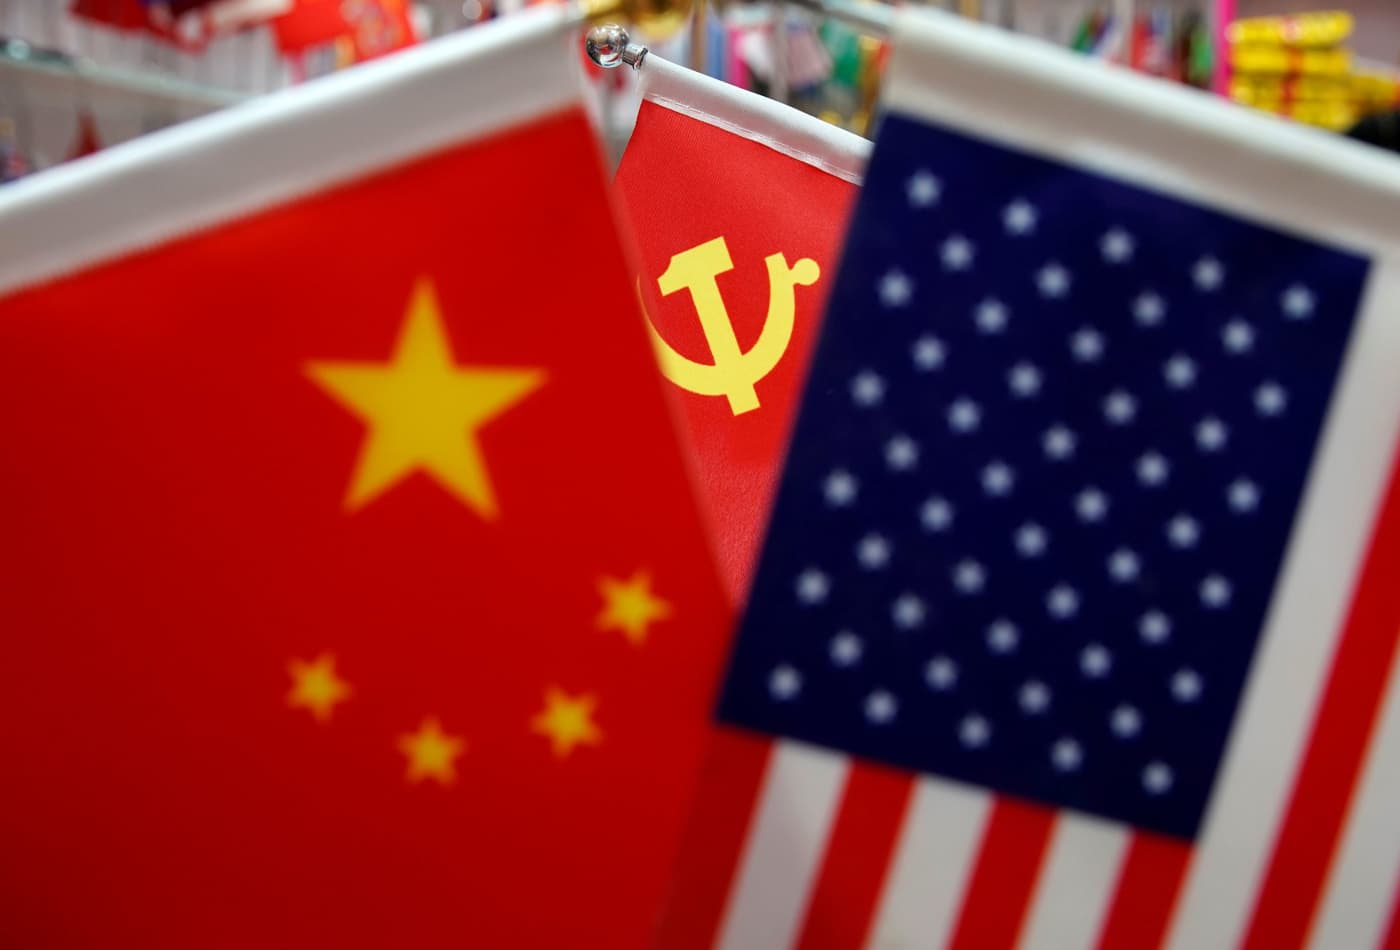 Chinese foreign minister takes firm tone, calls for 'non-interference' between China and the U.S.